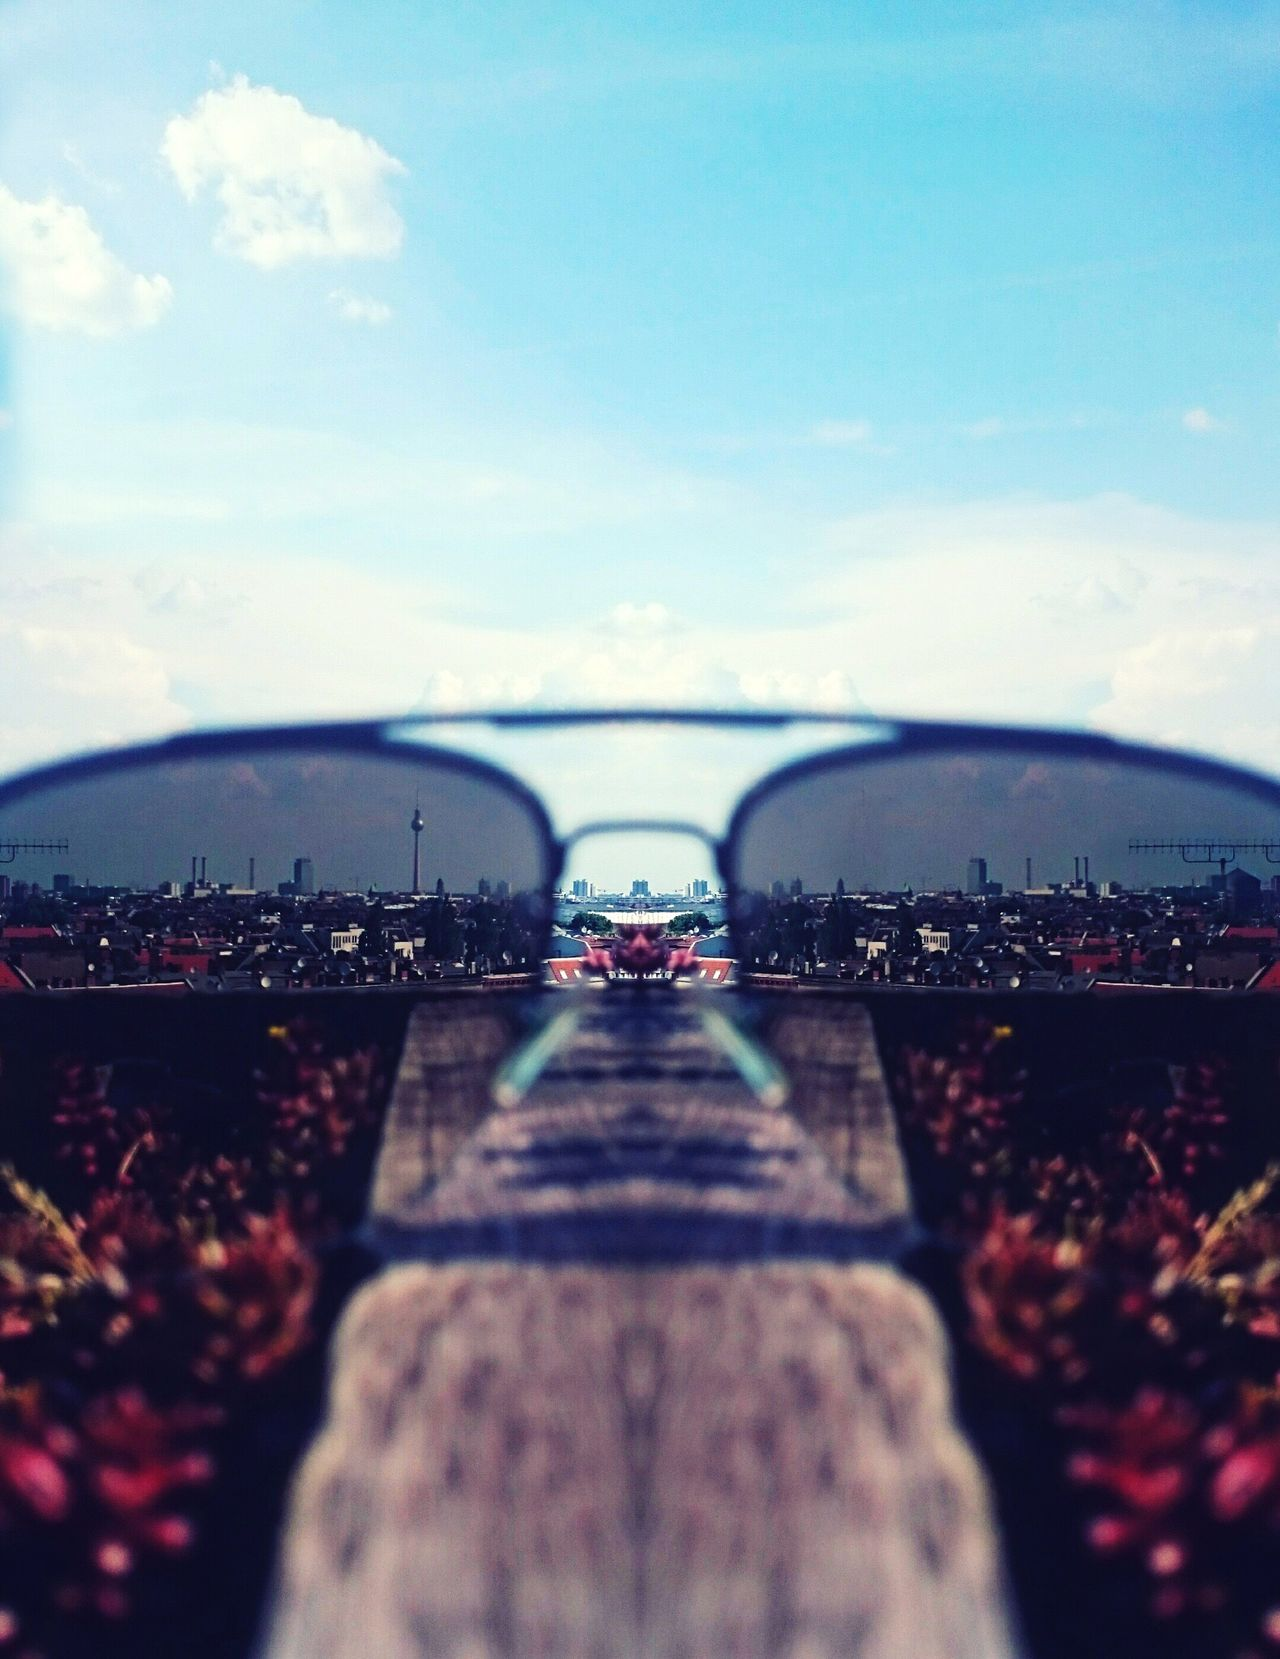 Through Sunglass - Urban Geometry Urban Exploration Panorama Cityscape Lifestyles Summertime Chillaxing Vintage Blur Close-up View From Above Capture The Moment Moments Of Life EyeEm Best Shots EyeEm Masterclass The Week On Eyem Perspectives And Dimensions Throughmyeyes The Secret Spaces The Great Outdoors - 2017 EyeEm Awards Neighborhood Map